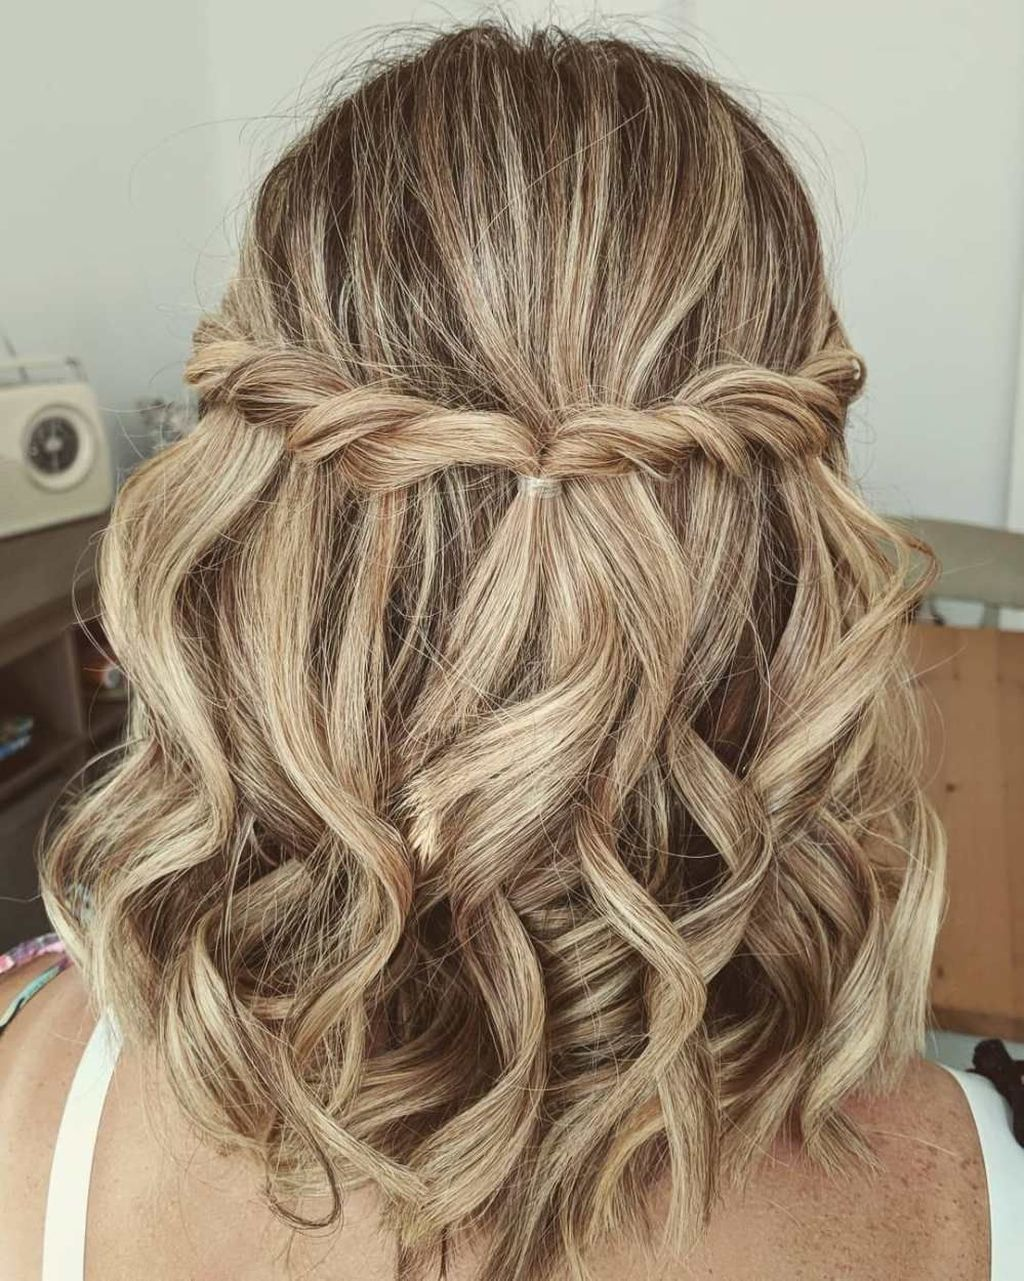 12 Newest Short Formal Hairstyles Ideas For Women  Medium length